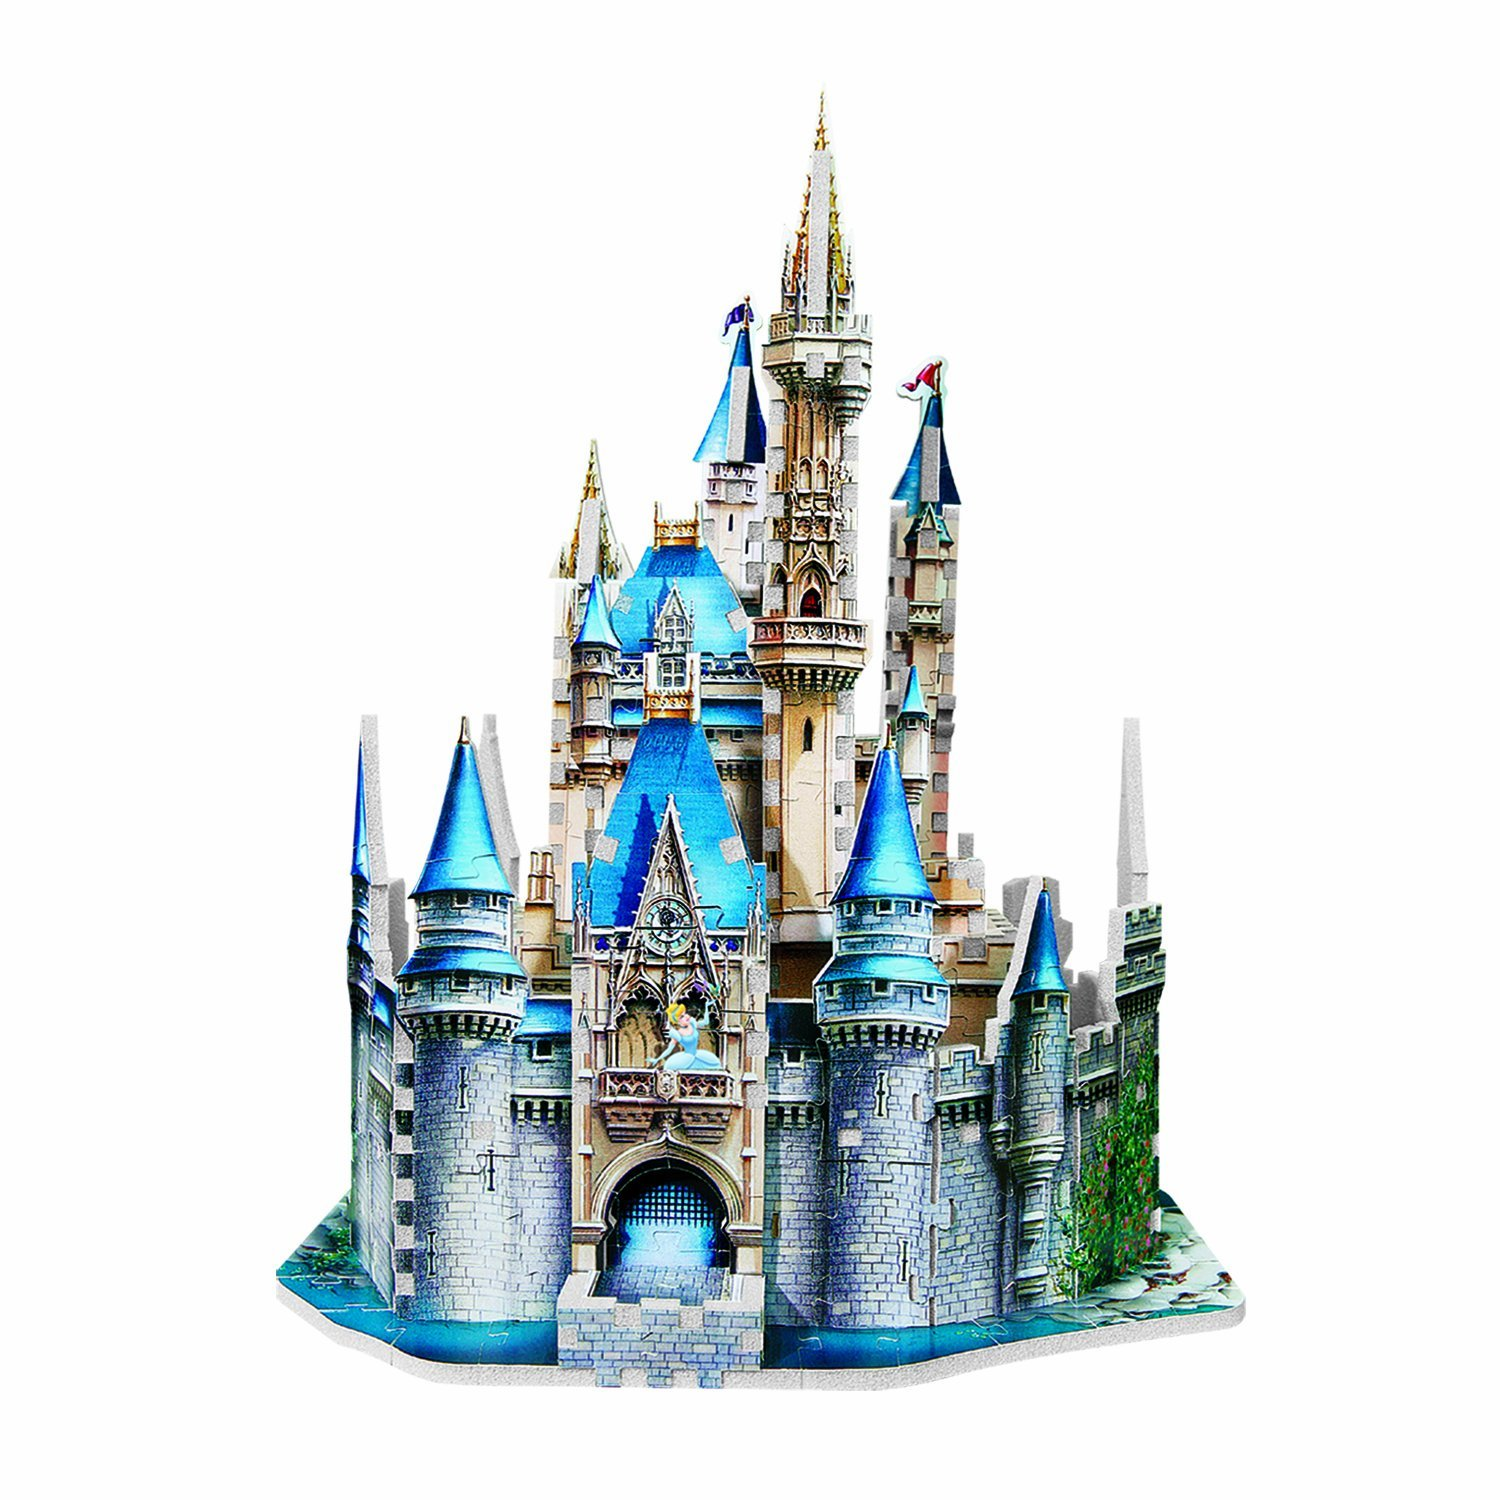 Disneyland clipart palace In Disney castle disney png